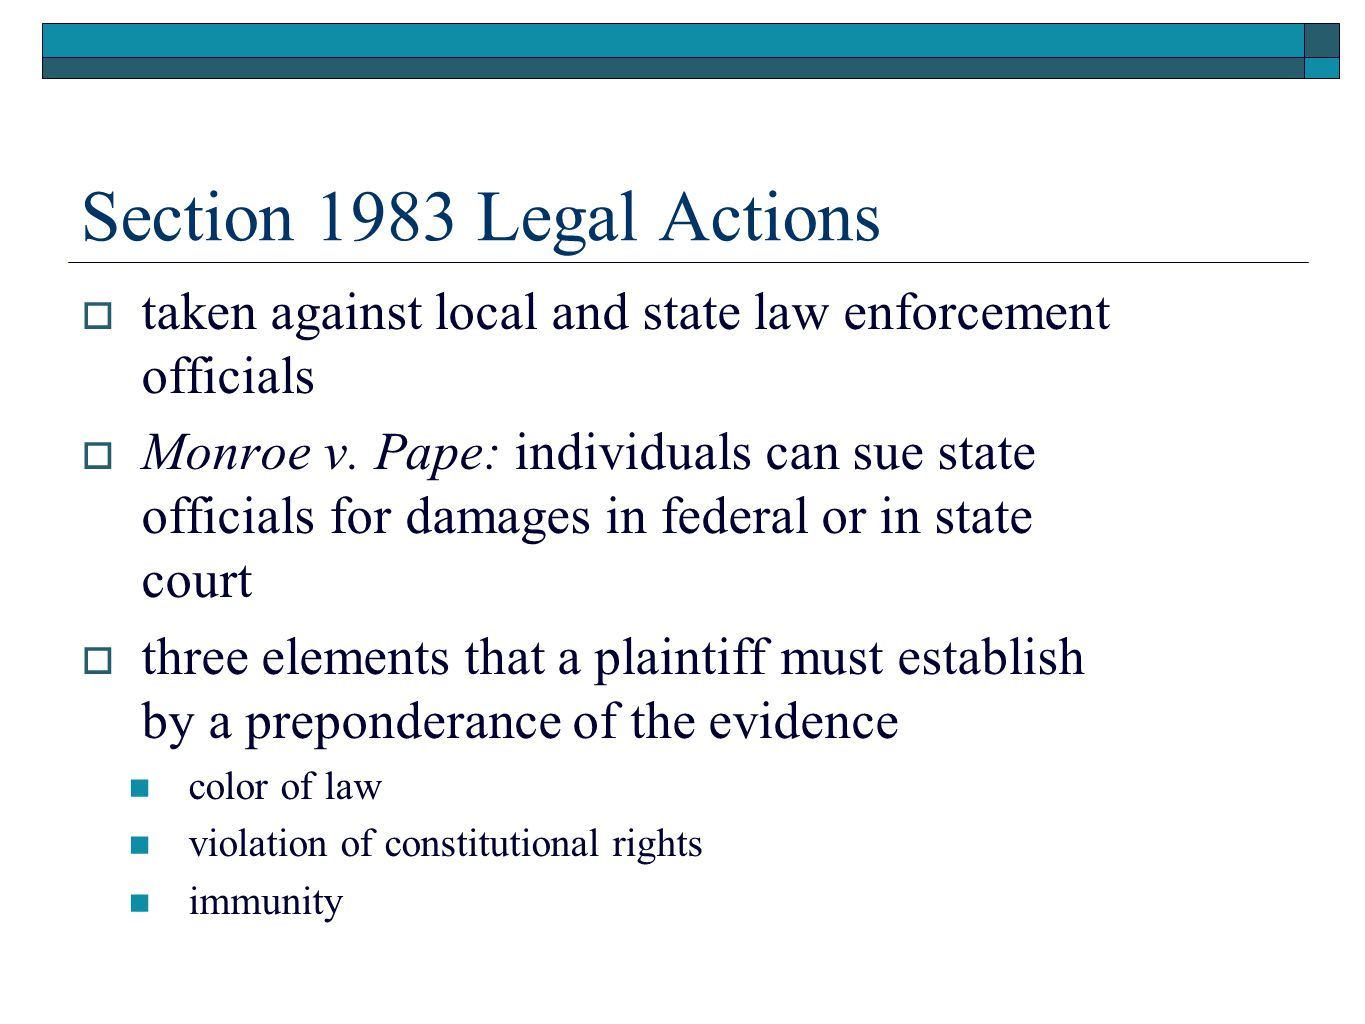 Section 1983 Legal Actions taken against local and state law enforcement officials.